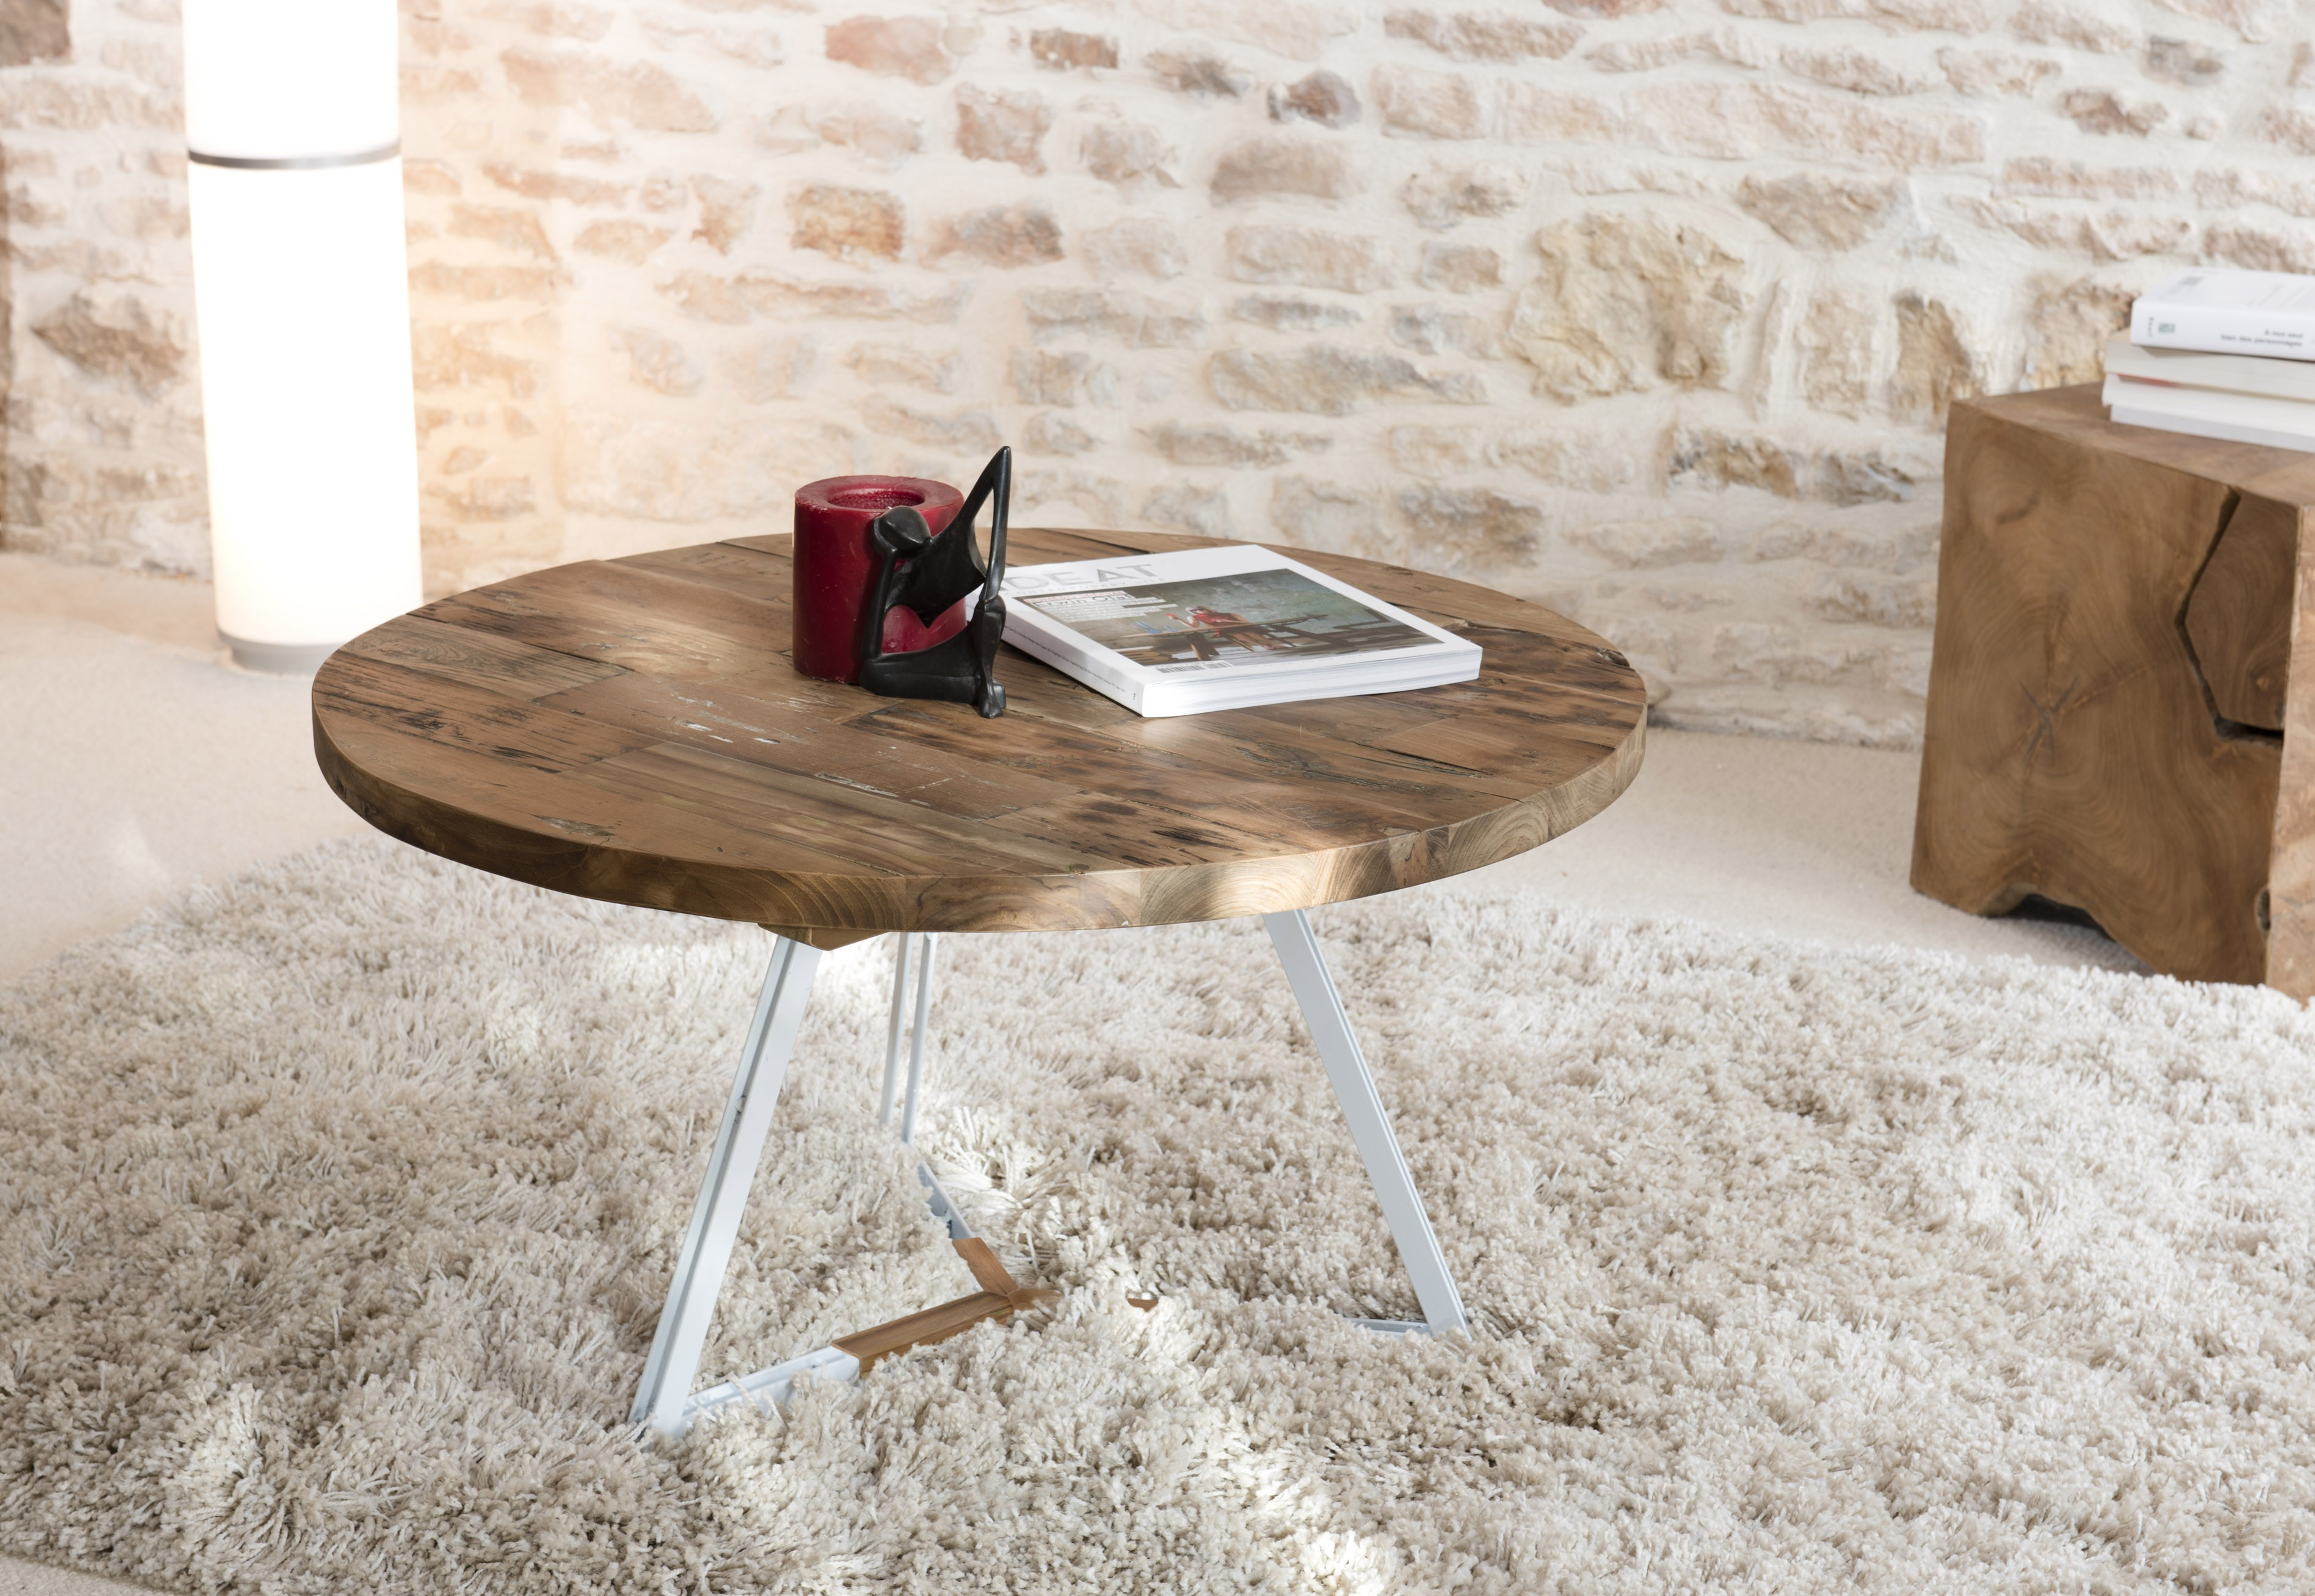 Inspirant table de salon mis en place hht5 appareils de for Table basse ronde blanche et bois